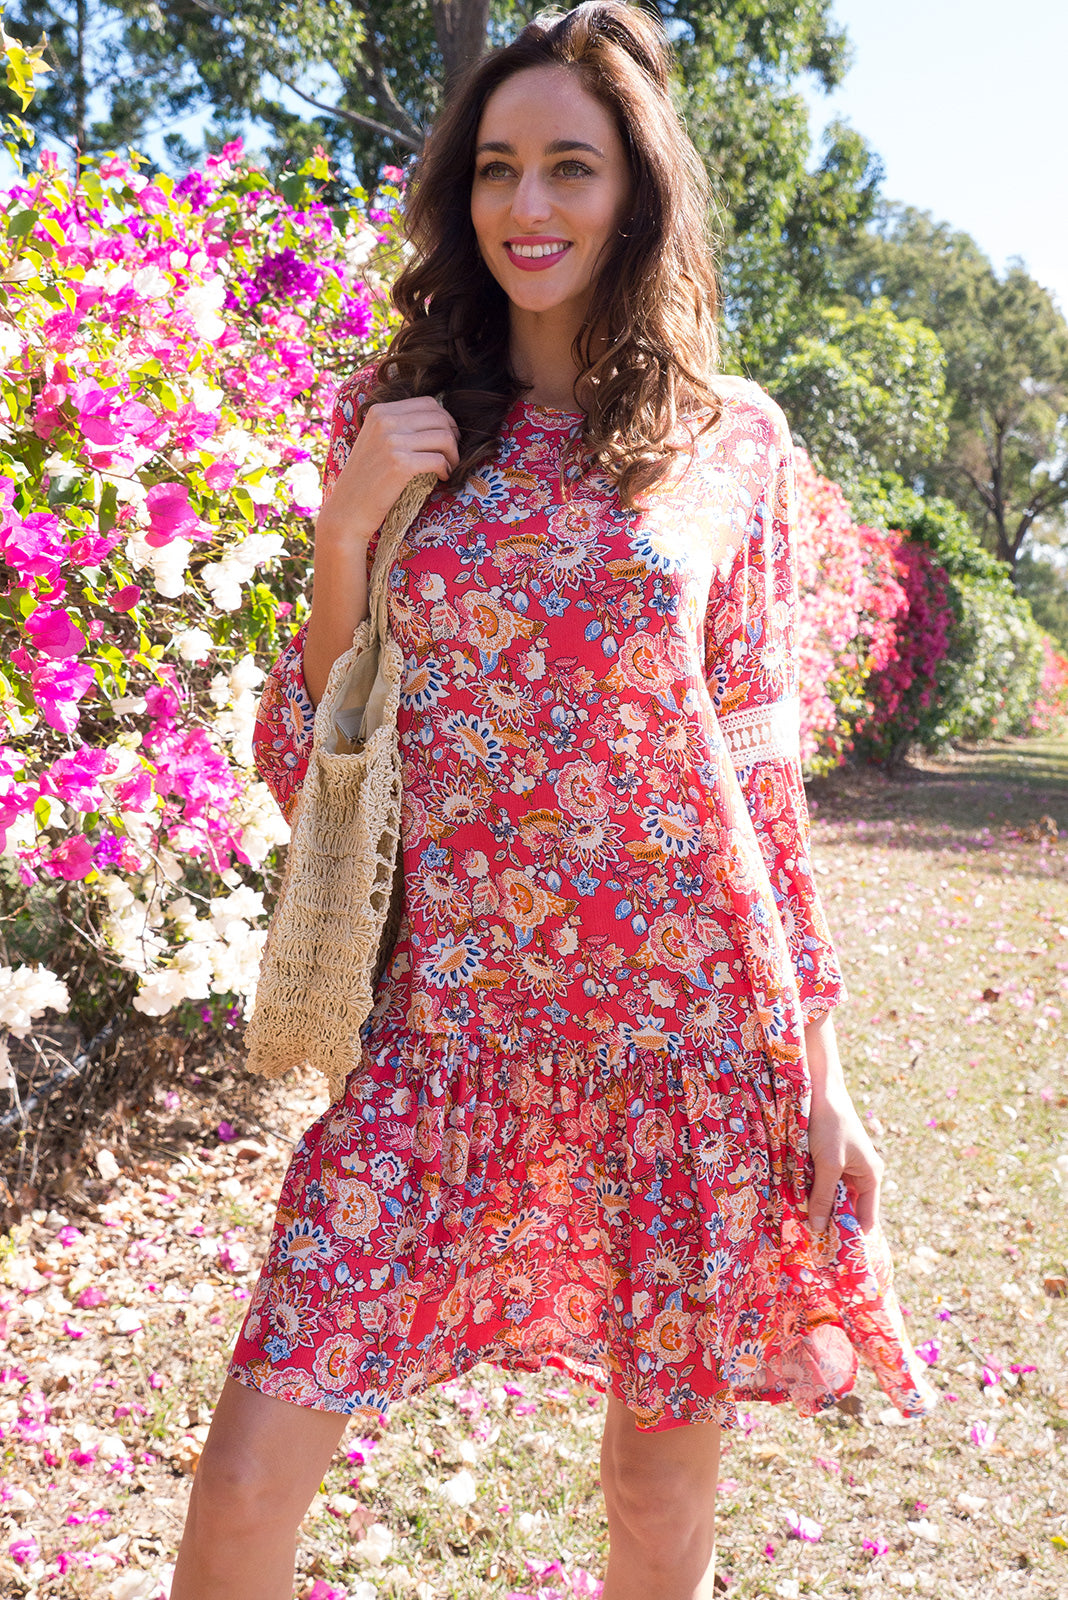 Savannah Melon Paisley Dress drop waist dress features a fun boho inspired paisley floral print on a crinkled woven rayon with a frill sleeve and beautiful decorative lace on the sleeve and across the front